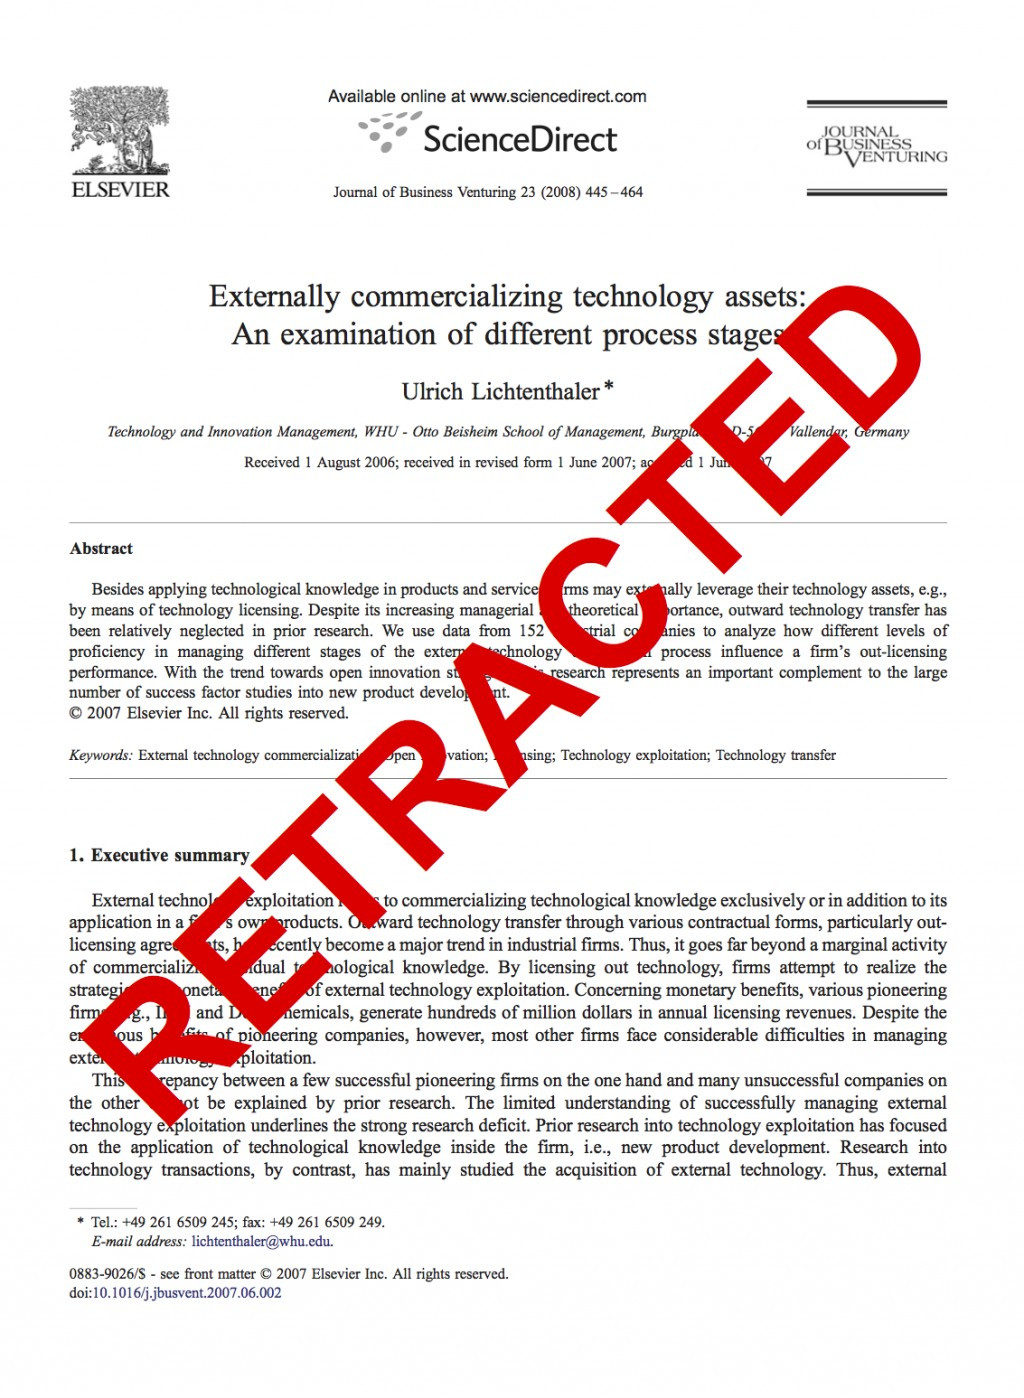 008 Research Paper 2010jbv Lichtenthalerretracted Can You Buy Amazing Papers Large